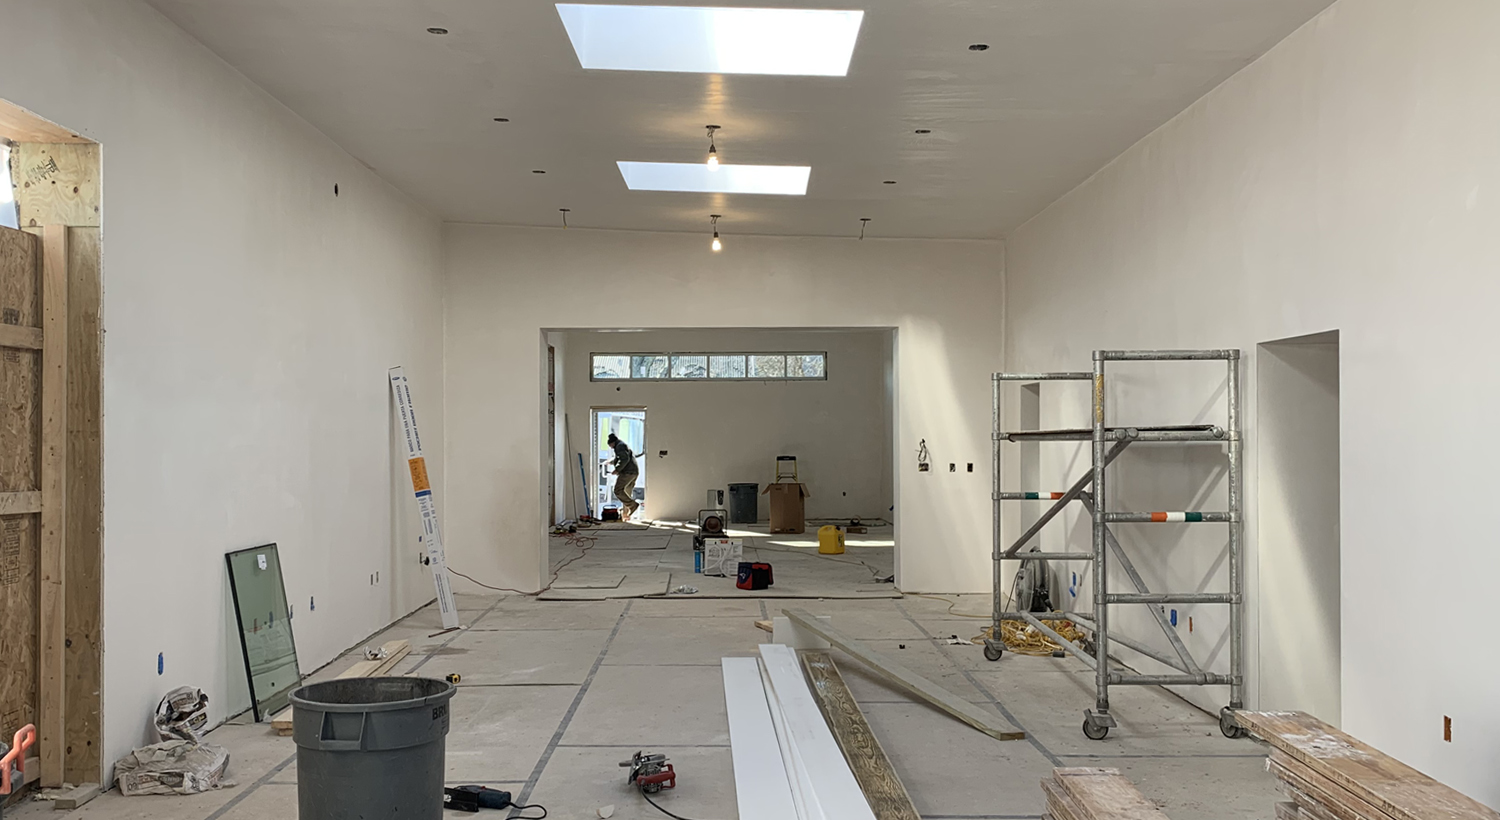 4. Taking Shape - Let There Be White! (December-January 12):